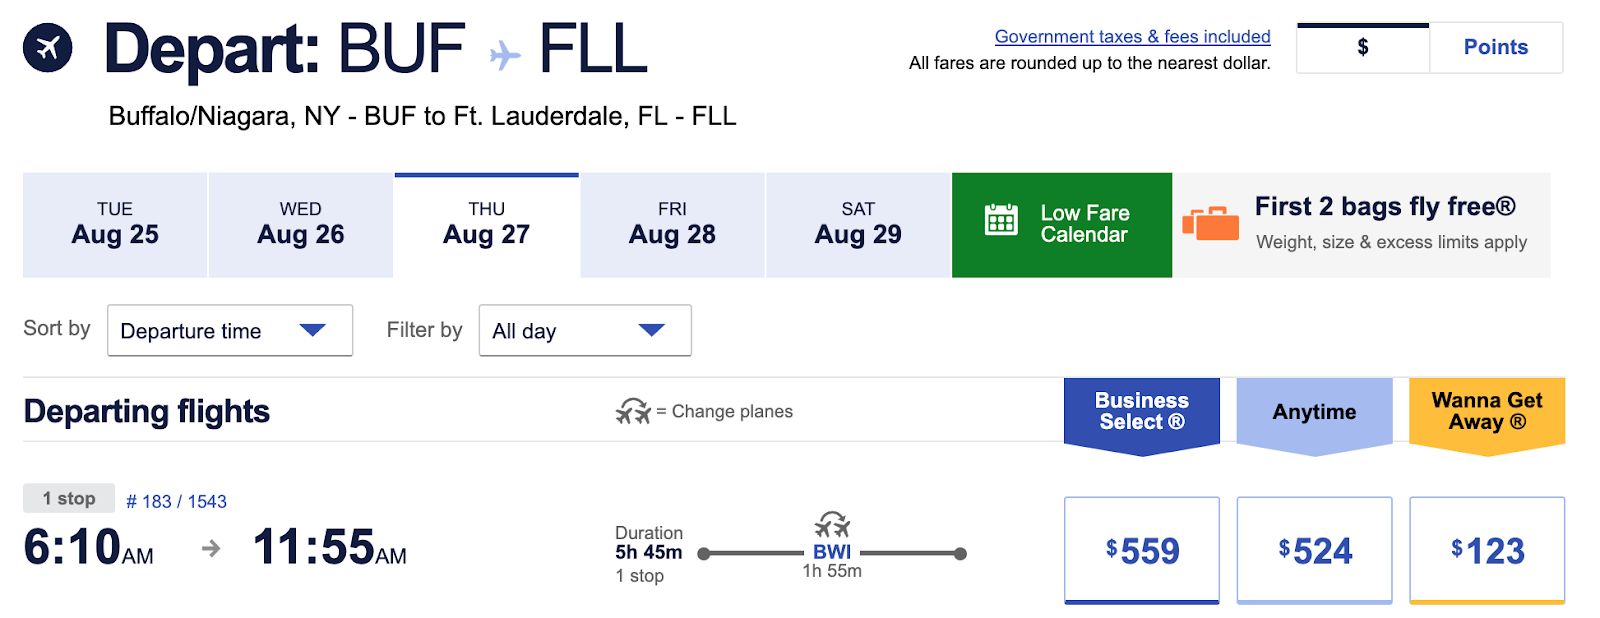 Screenshot of Southwest Flight booking from BUF-FLL for $123 wanna getaway fare